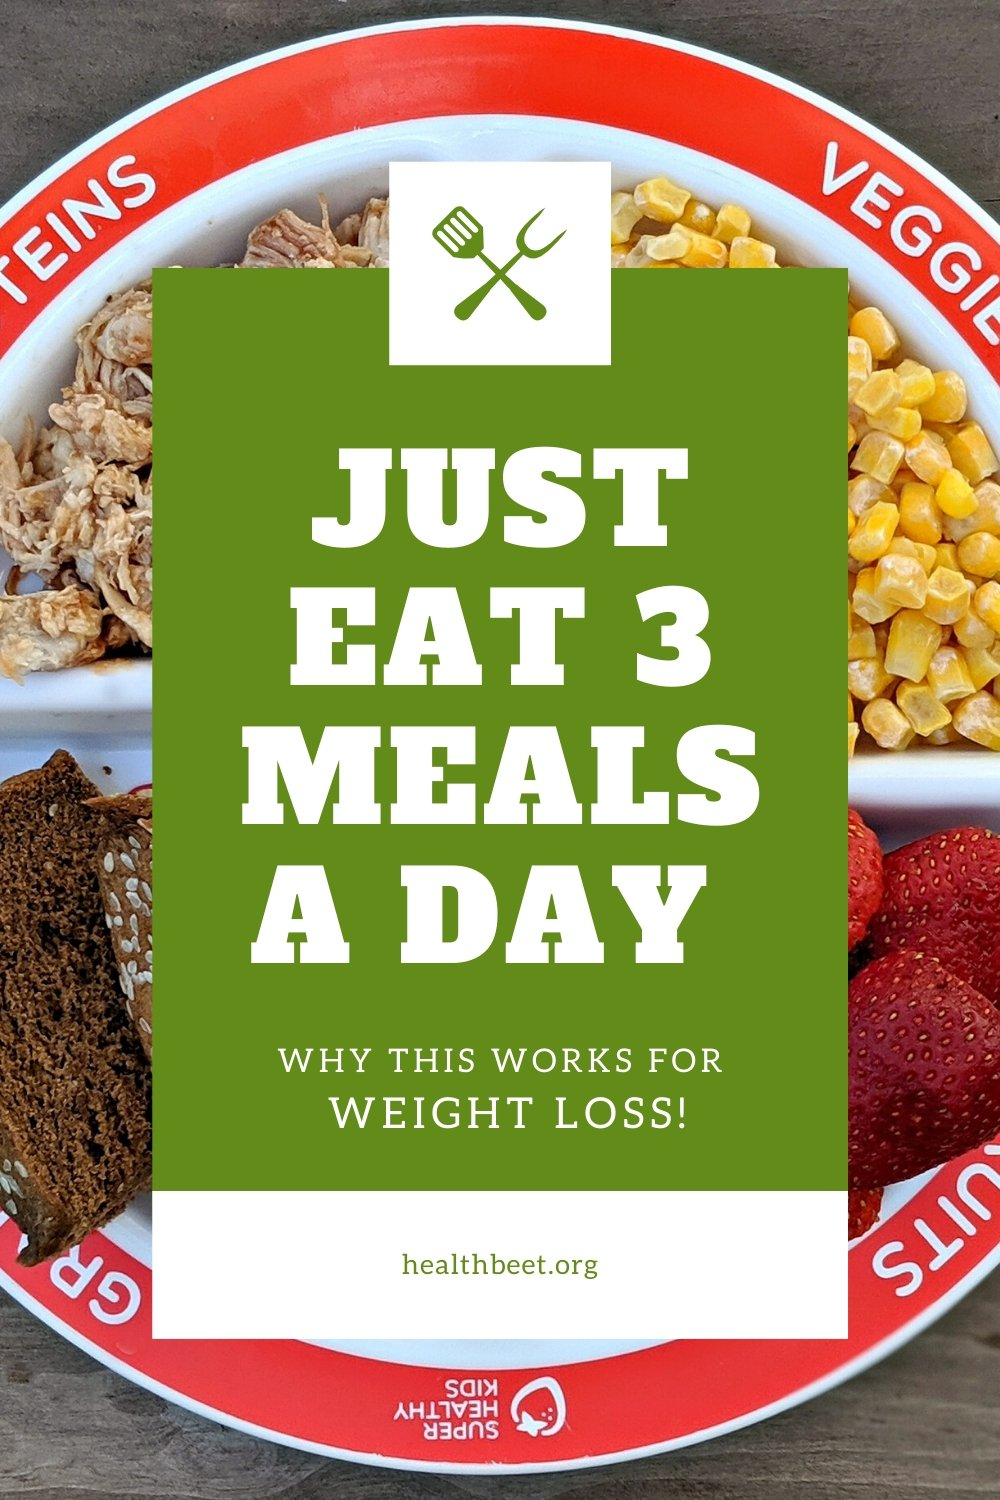 Three meals a day diet for weight loss